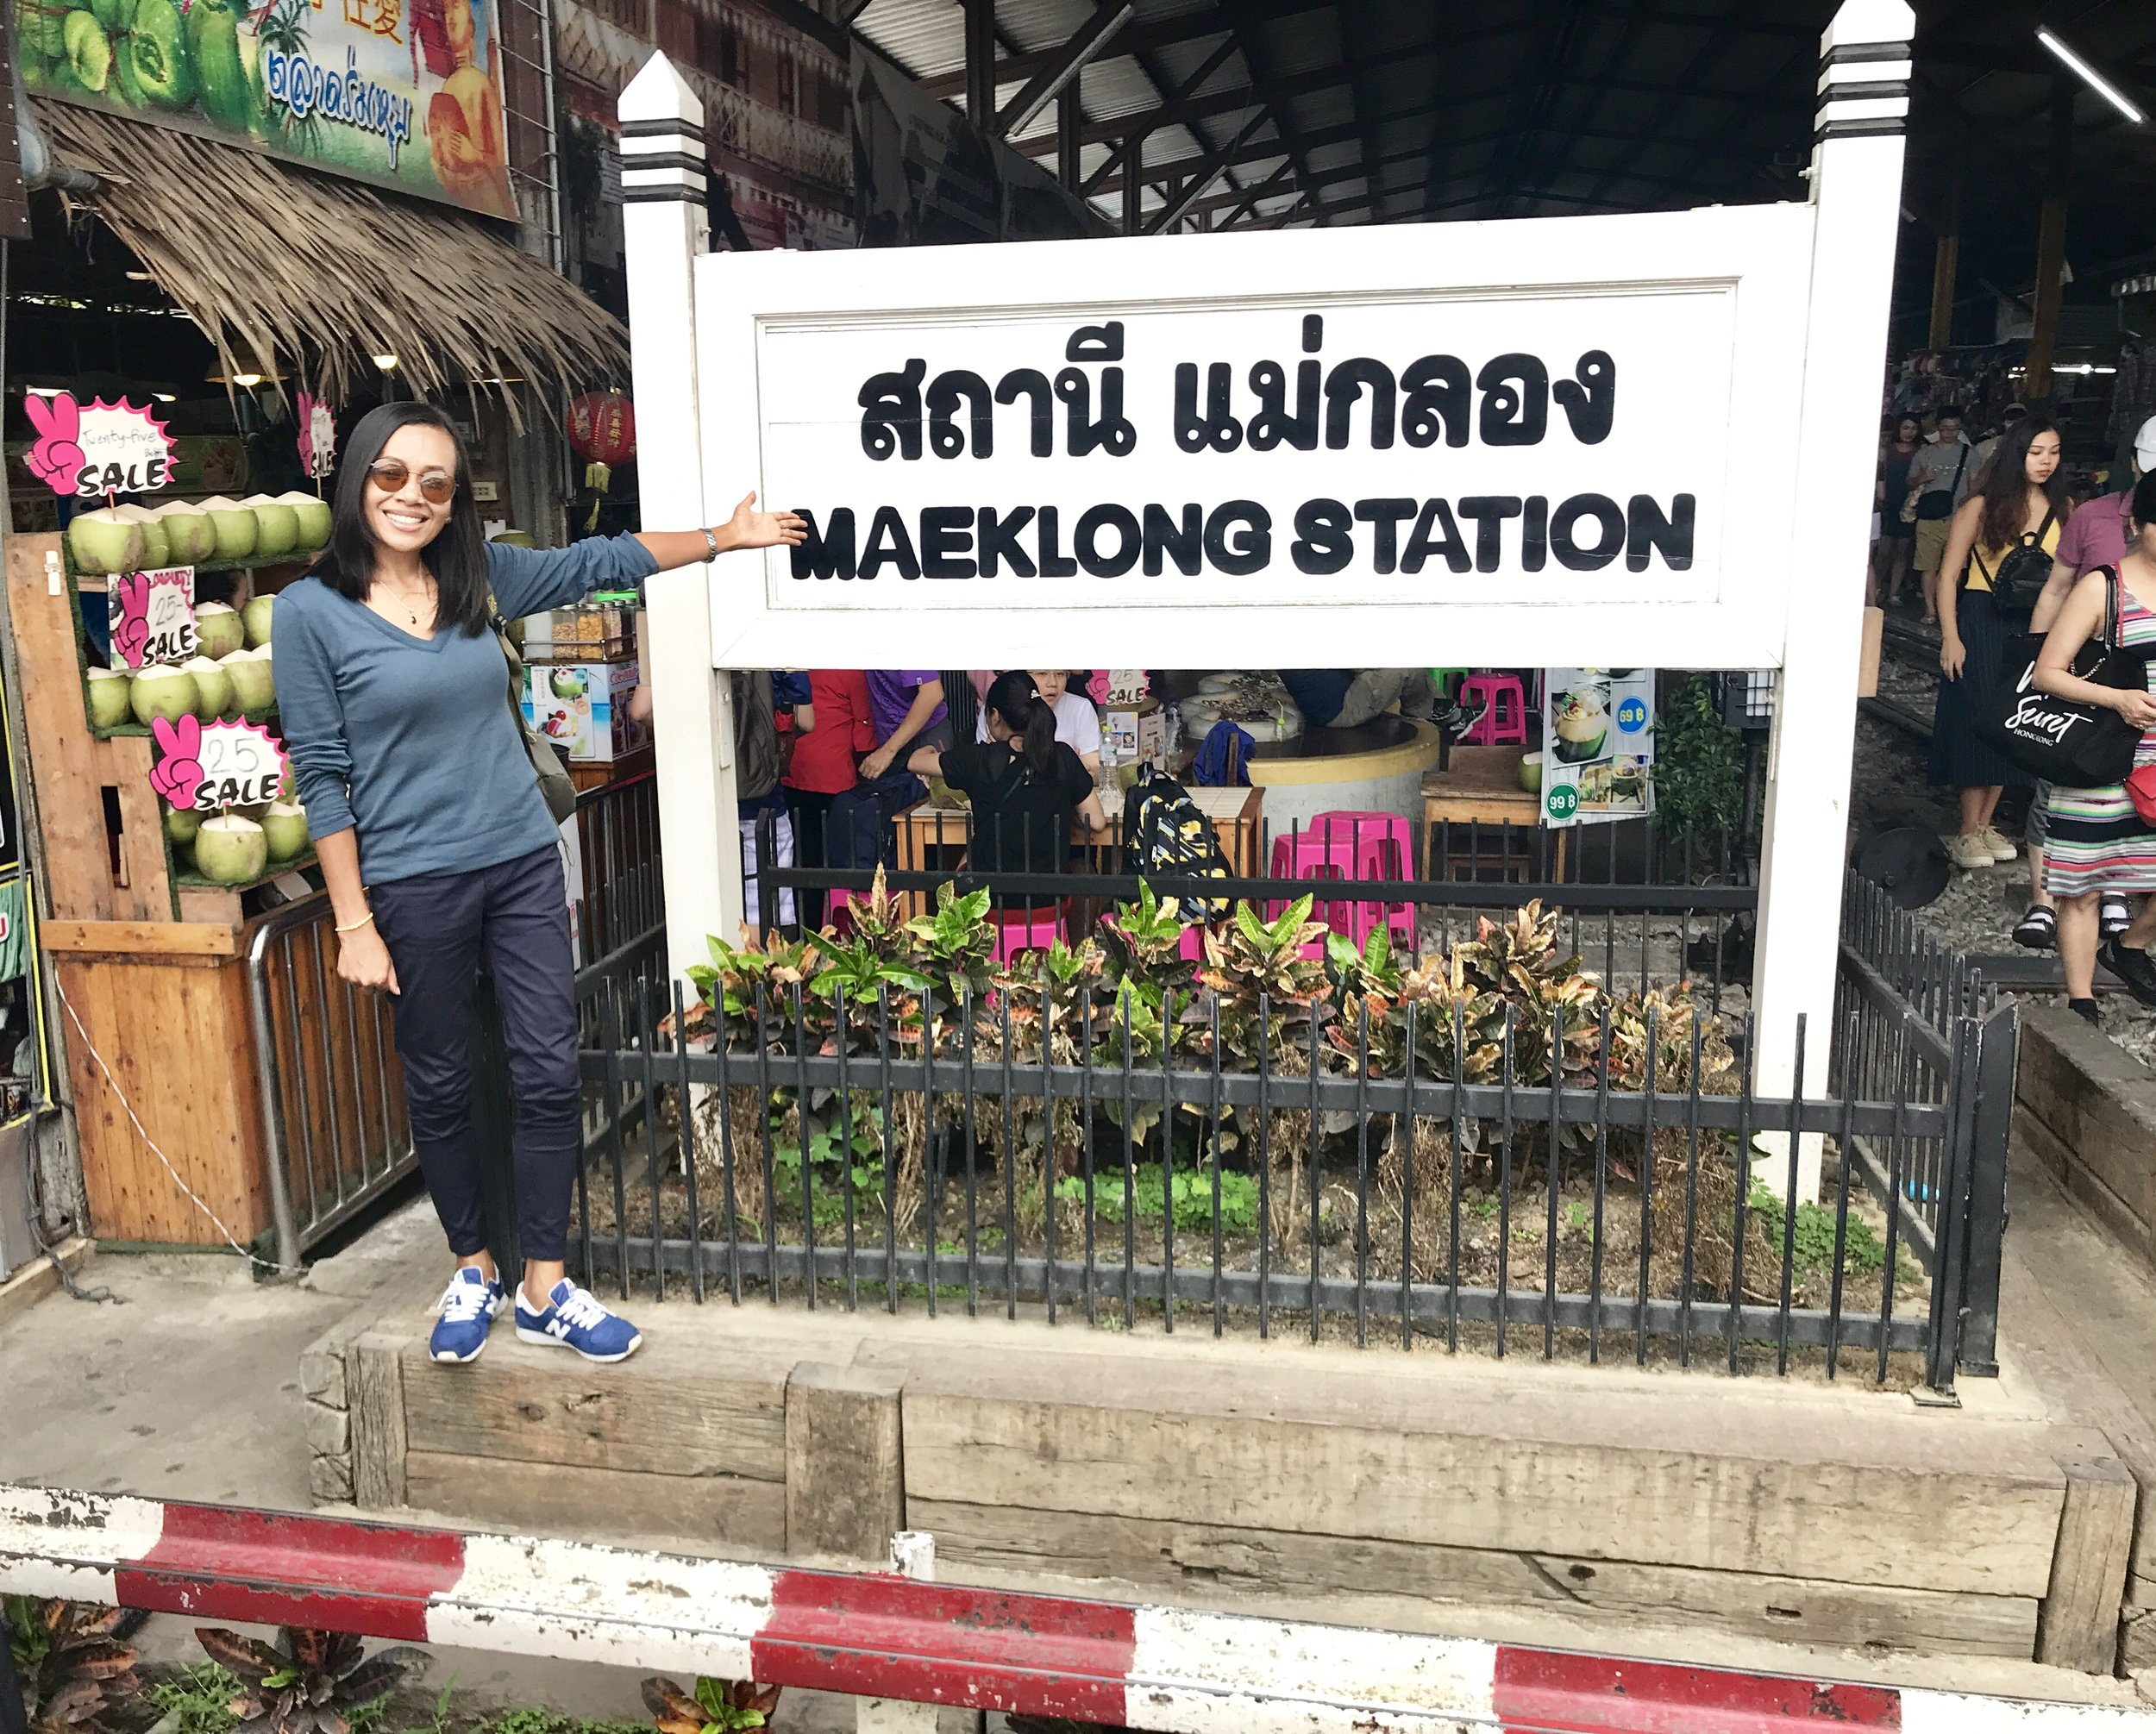 At Maeklong Railway Market in Samut Songkhram, Thailand